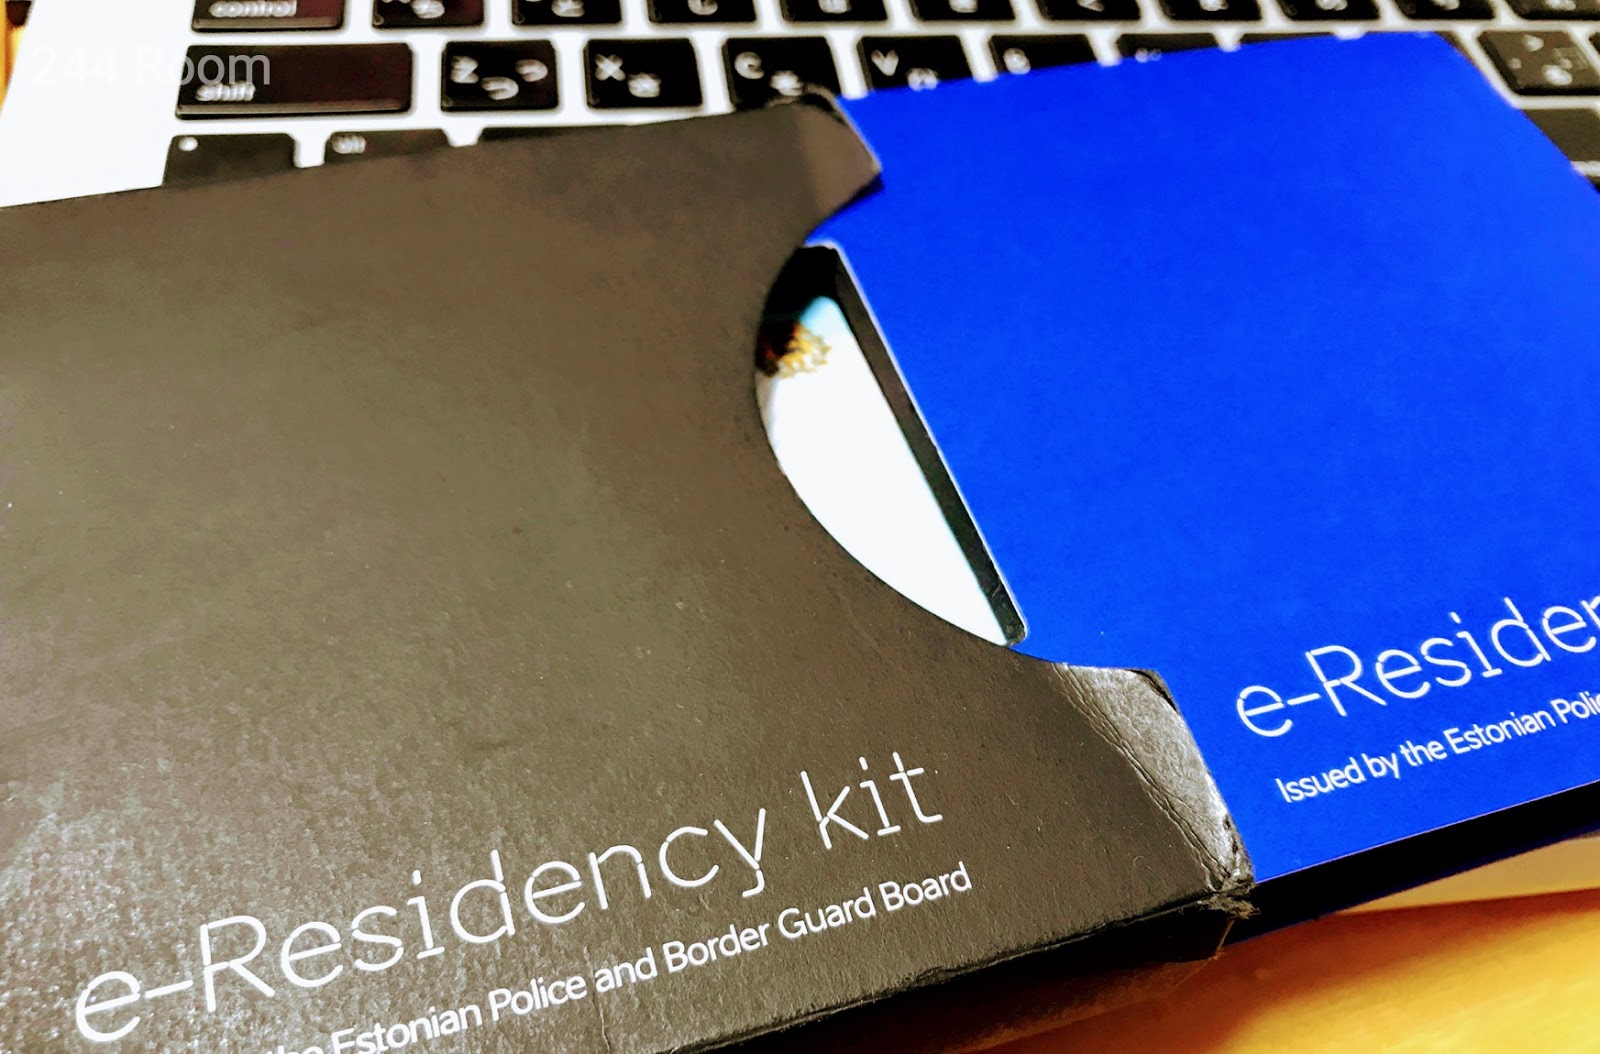 e-Residency kit by Estonia